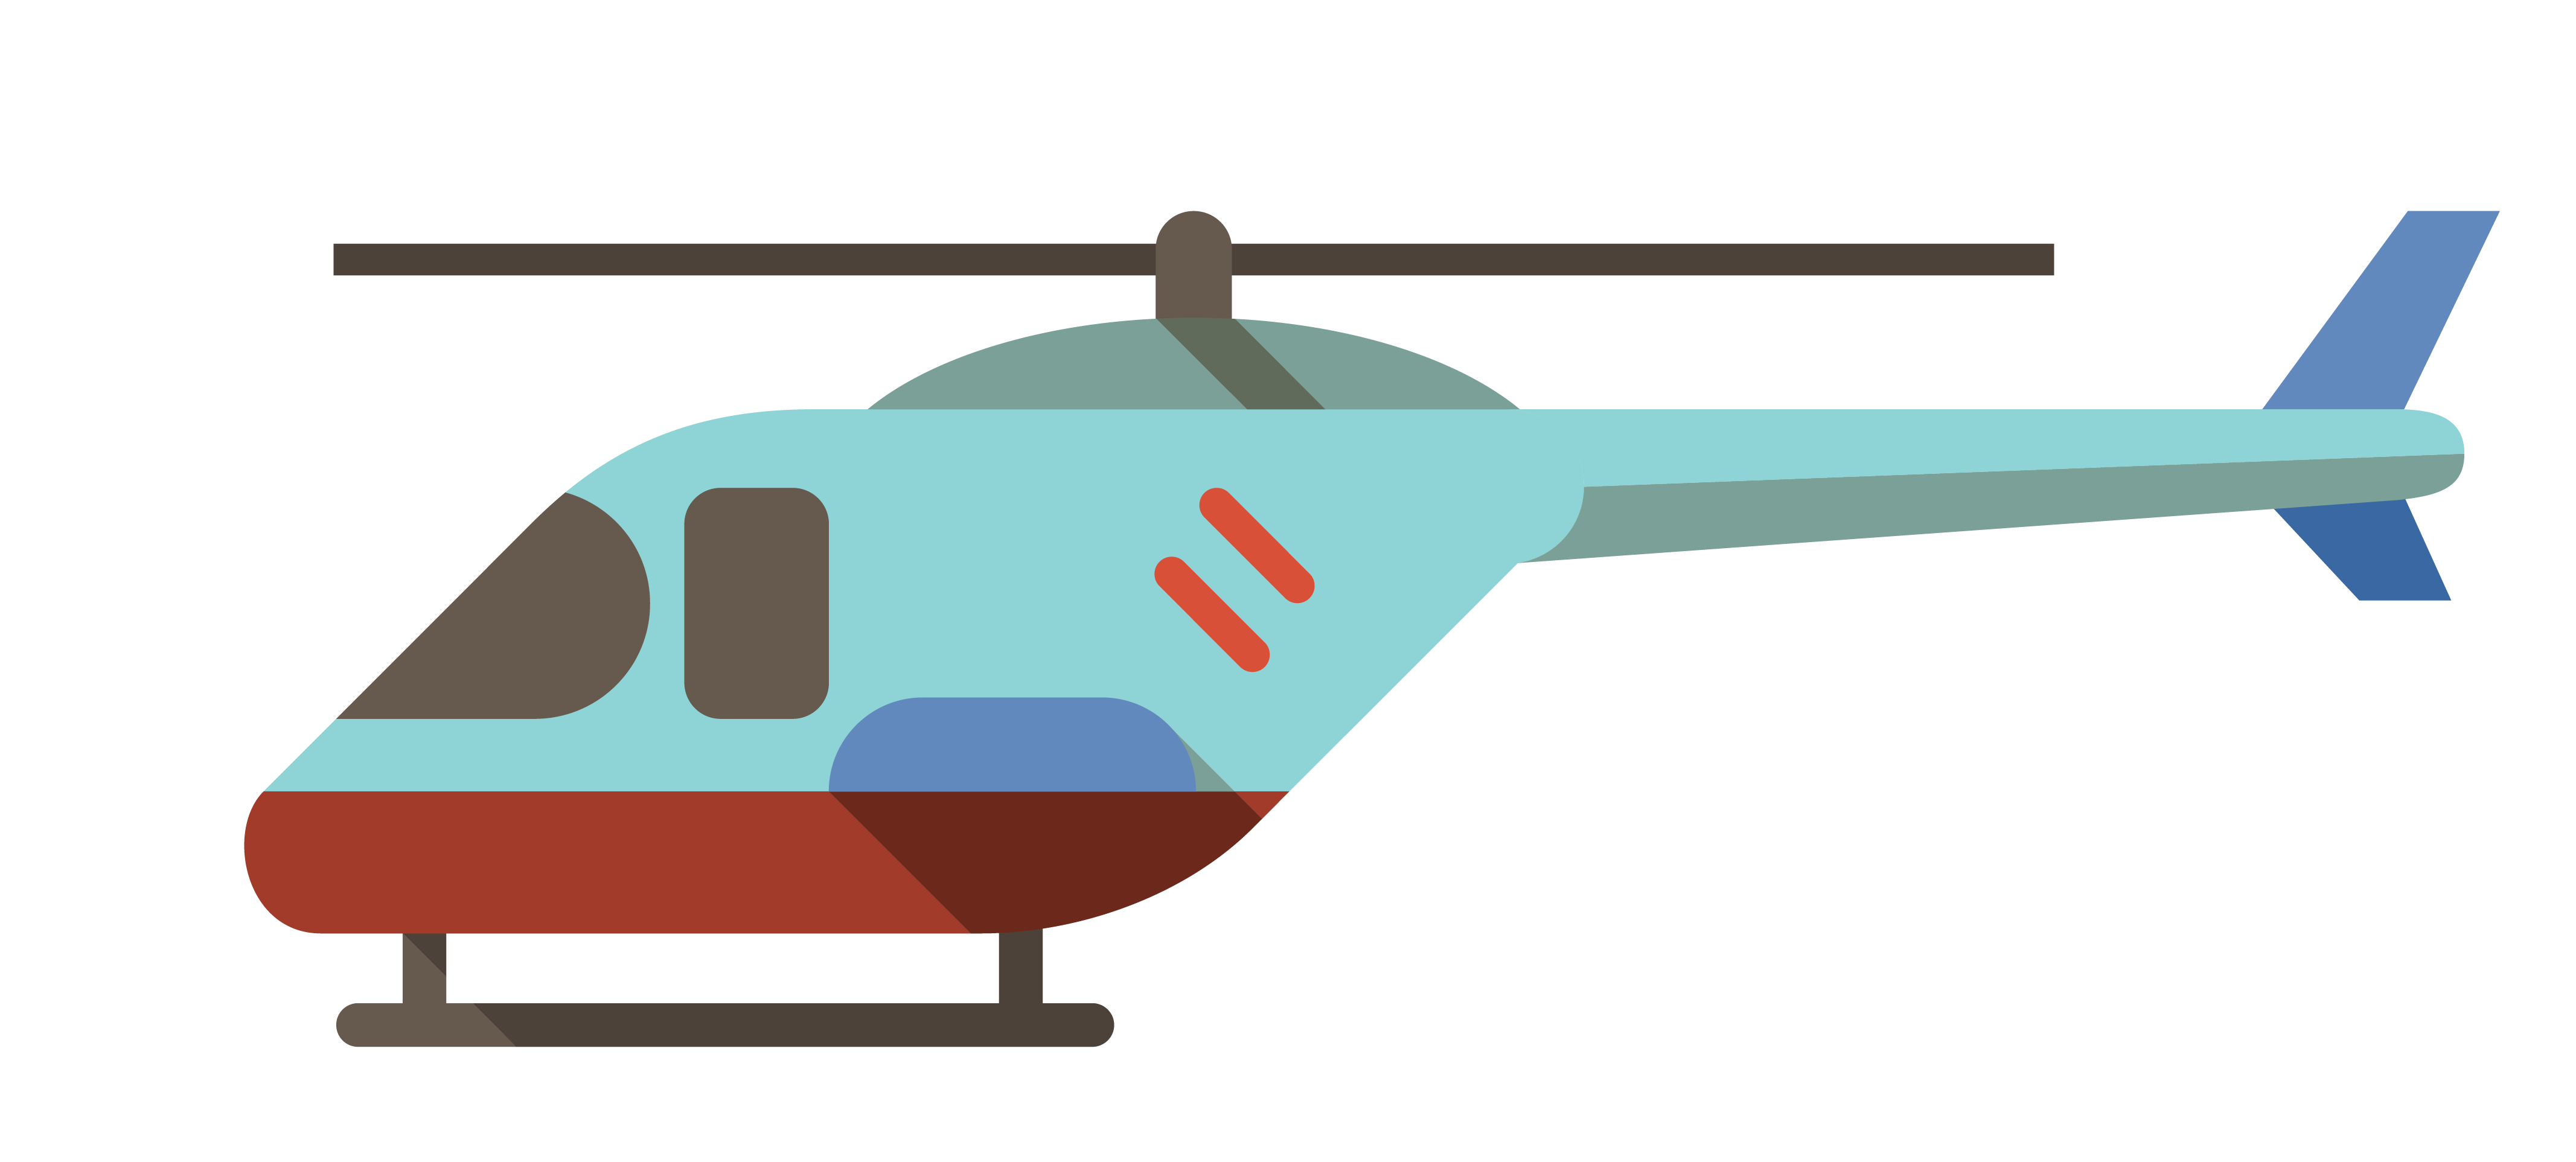 4267x1925 Helicopter Rotor Airplane